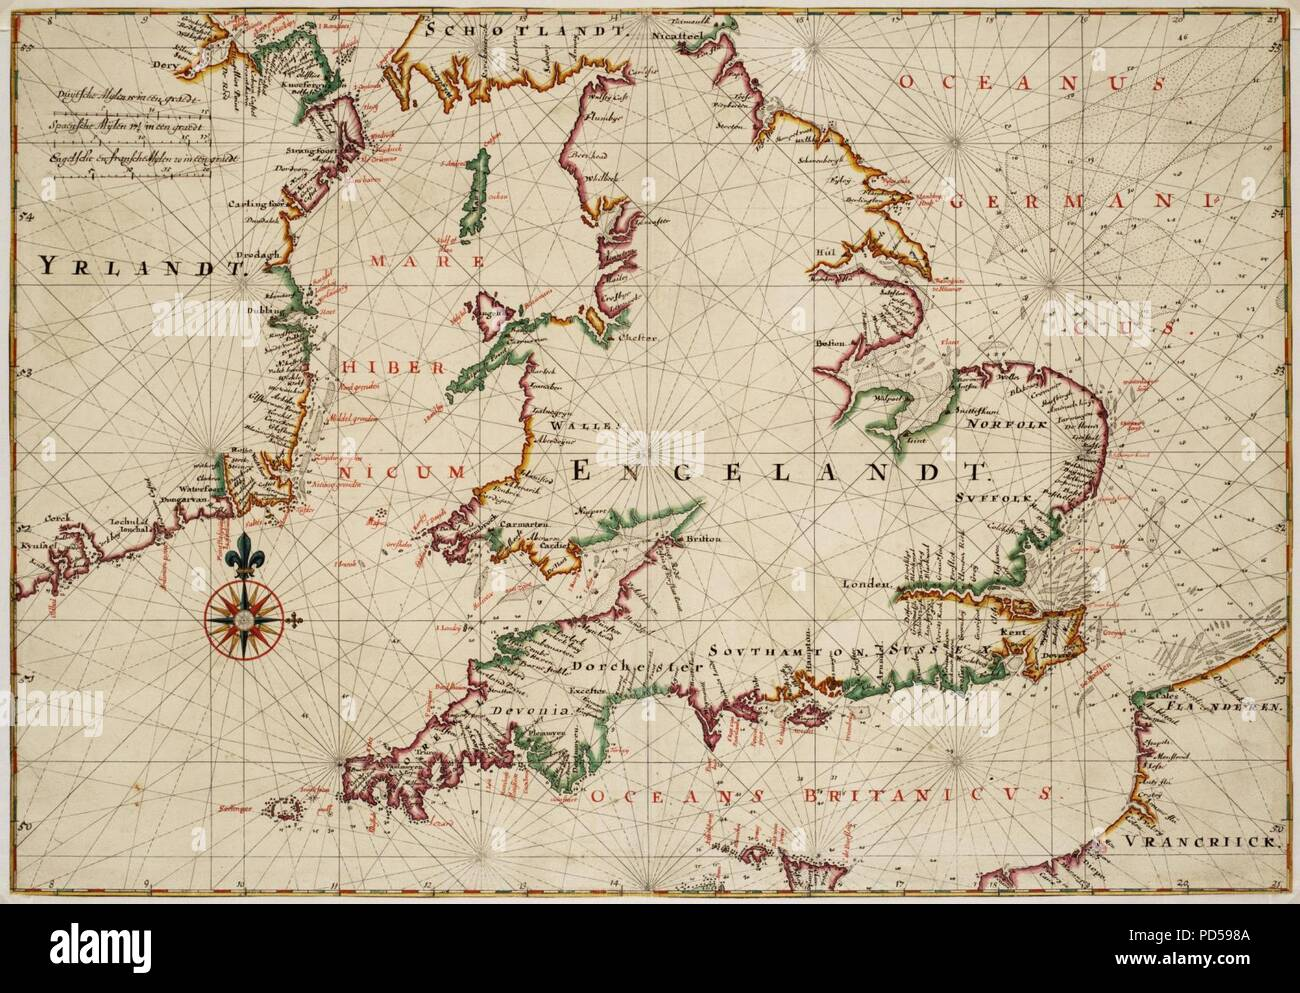 South Of Ireland Map.Map Of England The South Of Ireland And Part Of The French Coast